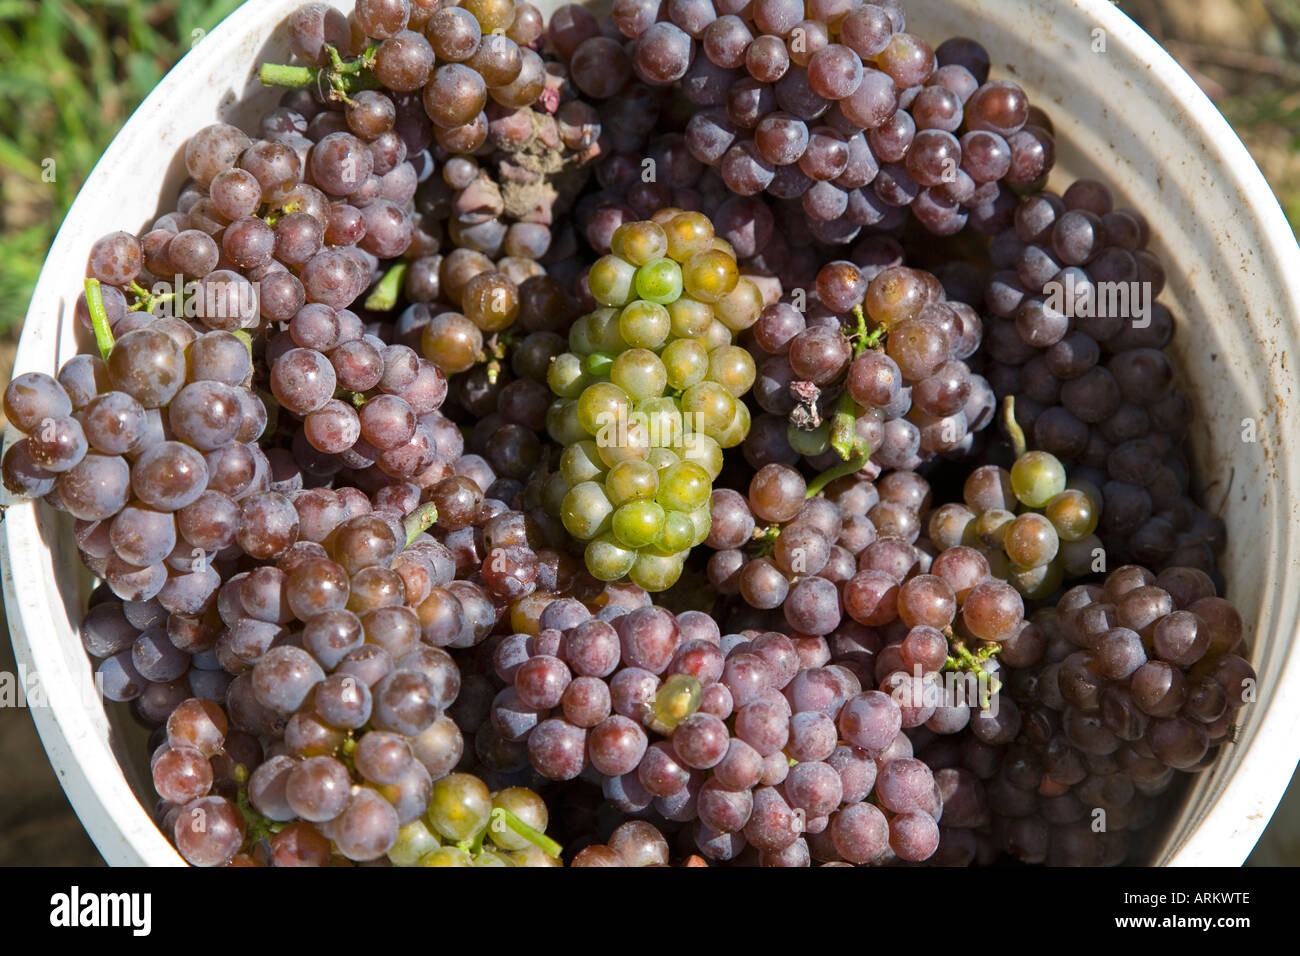 Coloma Michigan Pinot gris grapes harvested at the Karma Vista winery in southwestern Michigan - Stock Image